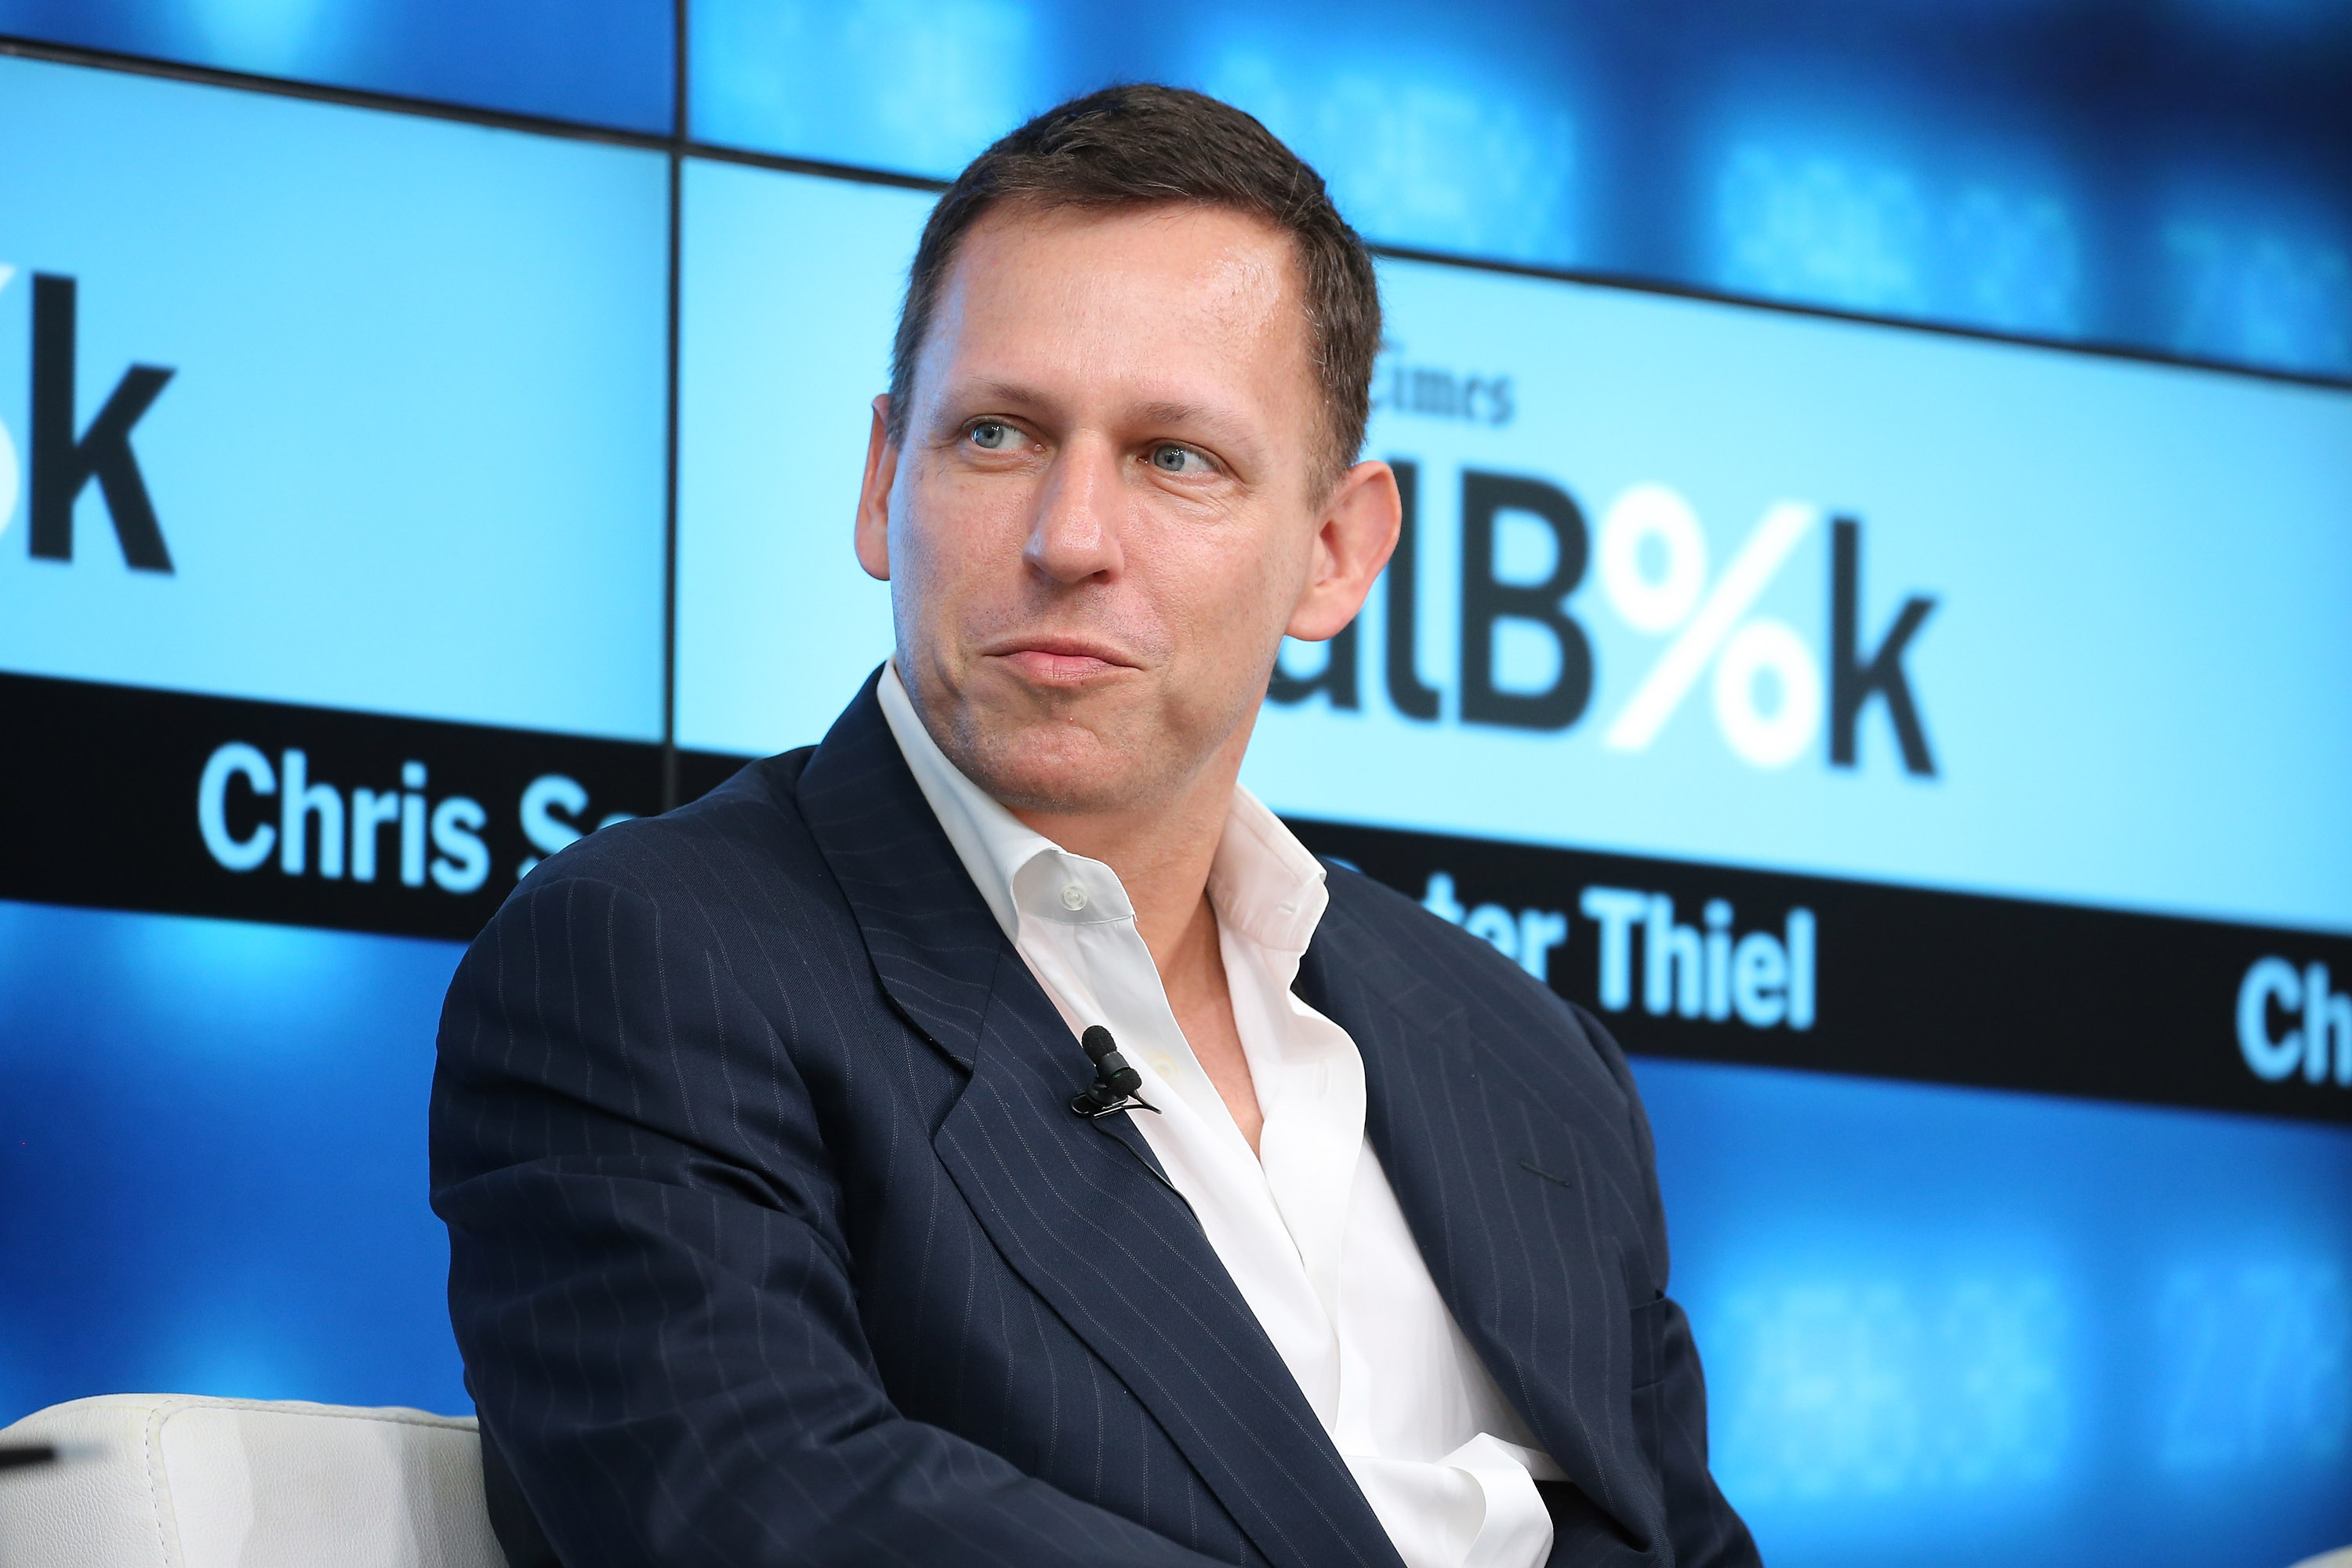 Peter Thiel is Leaving Silicon Valley Over Intolerance to Conservatism